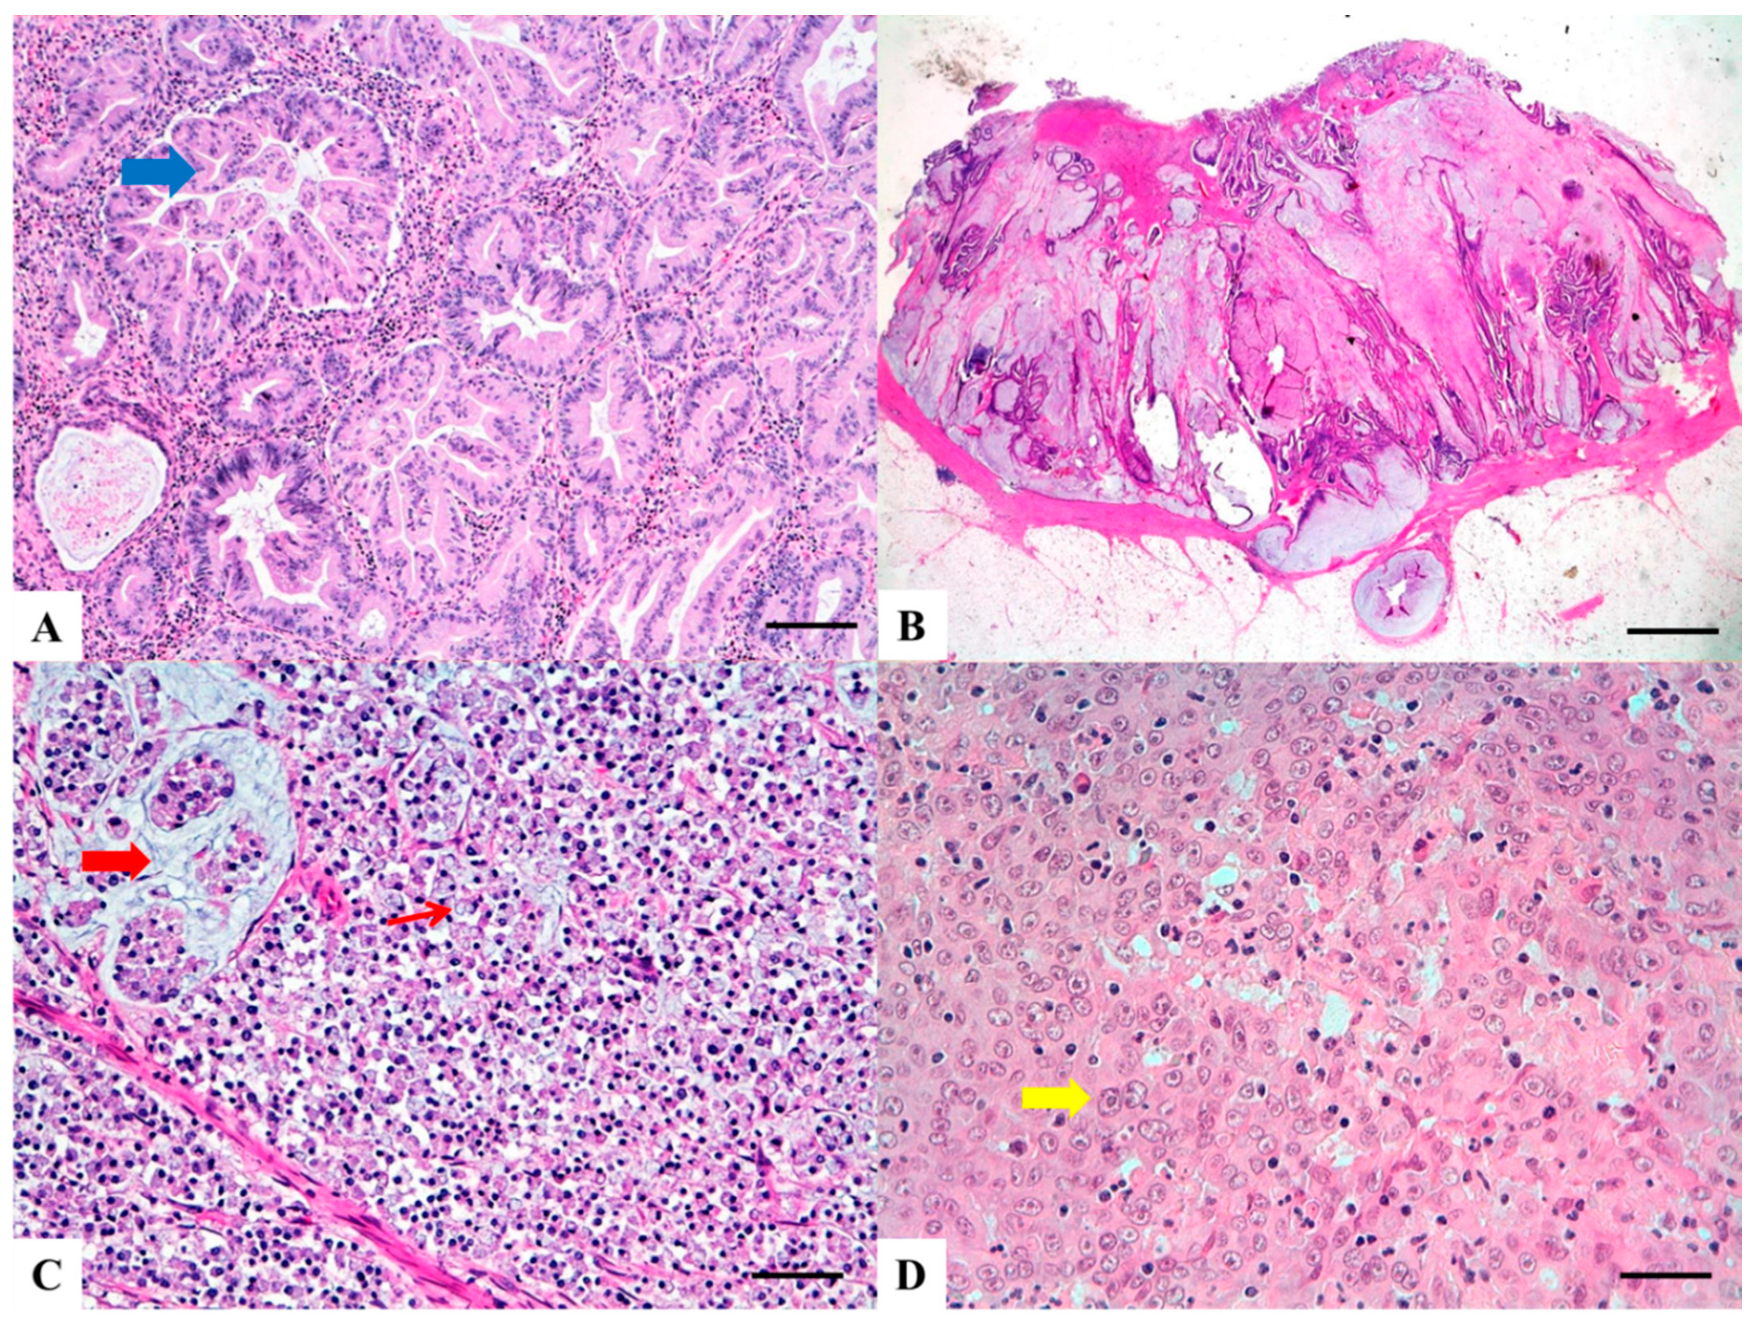 Cancers Free Full Text Morphology And Molecular Features Of Rare Colorectal Carcinoma Histotypes Html